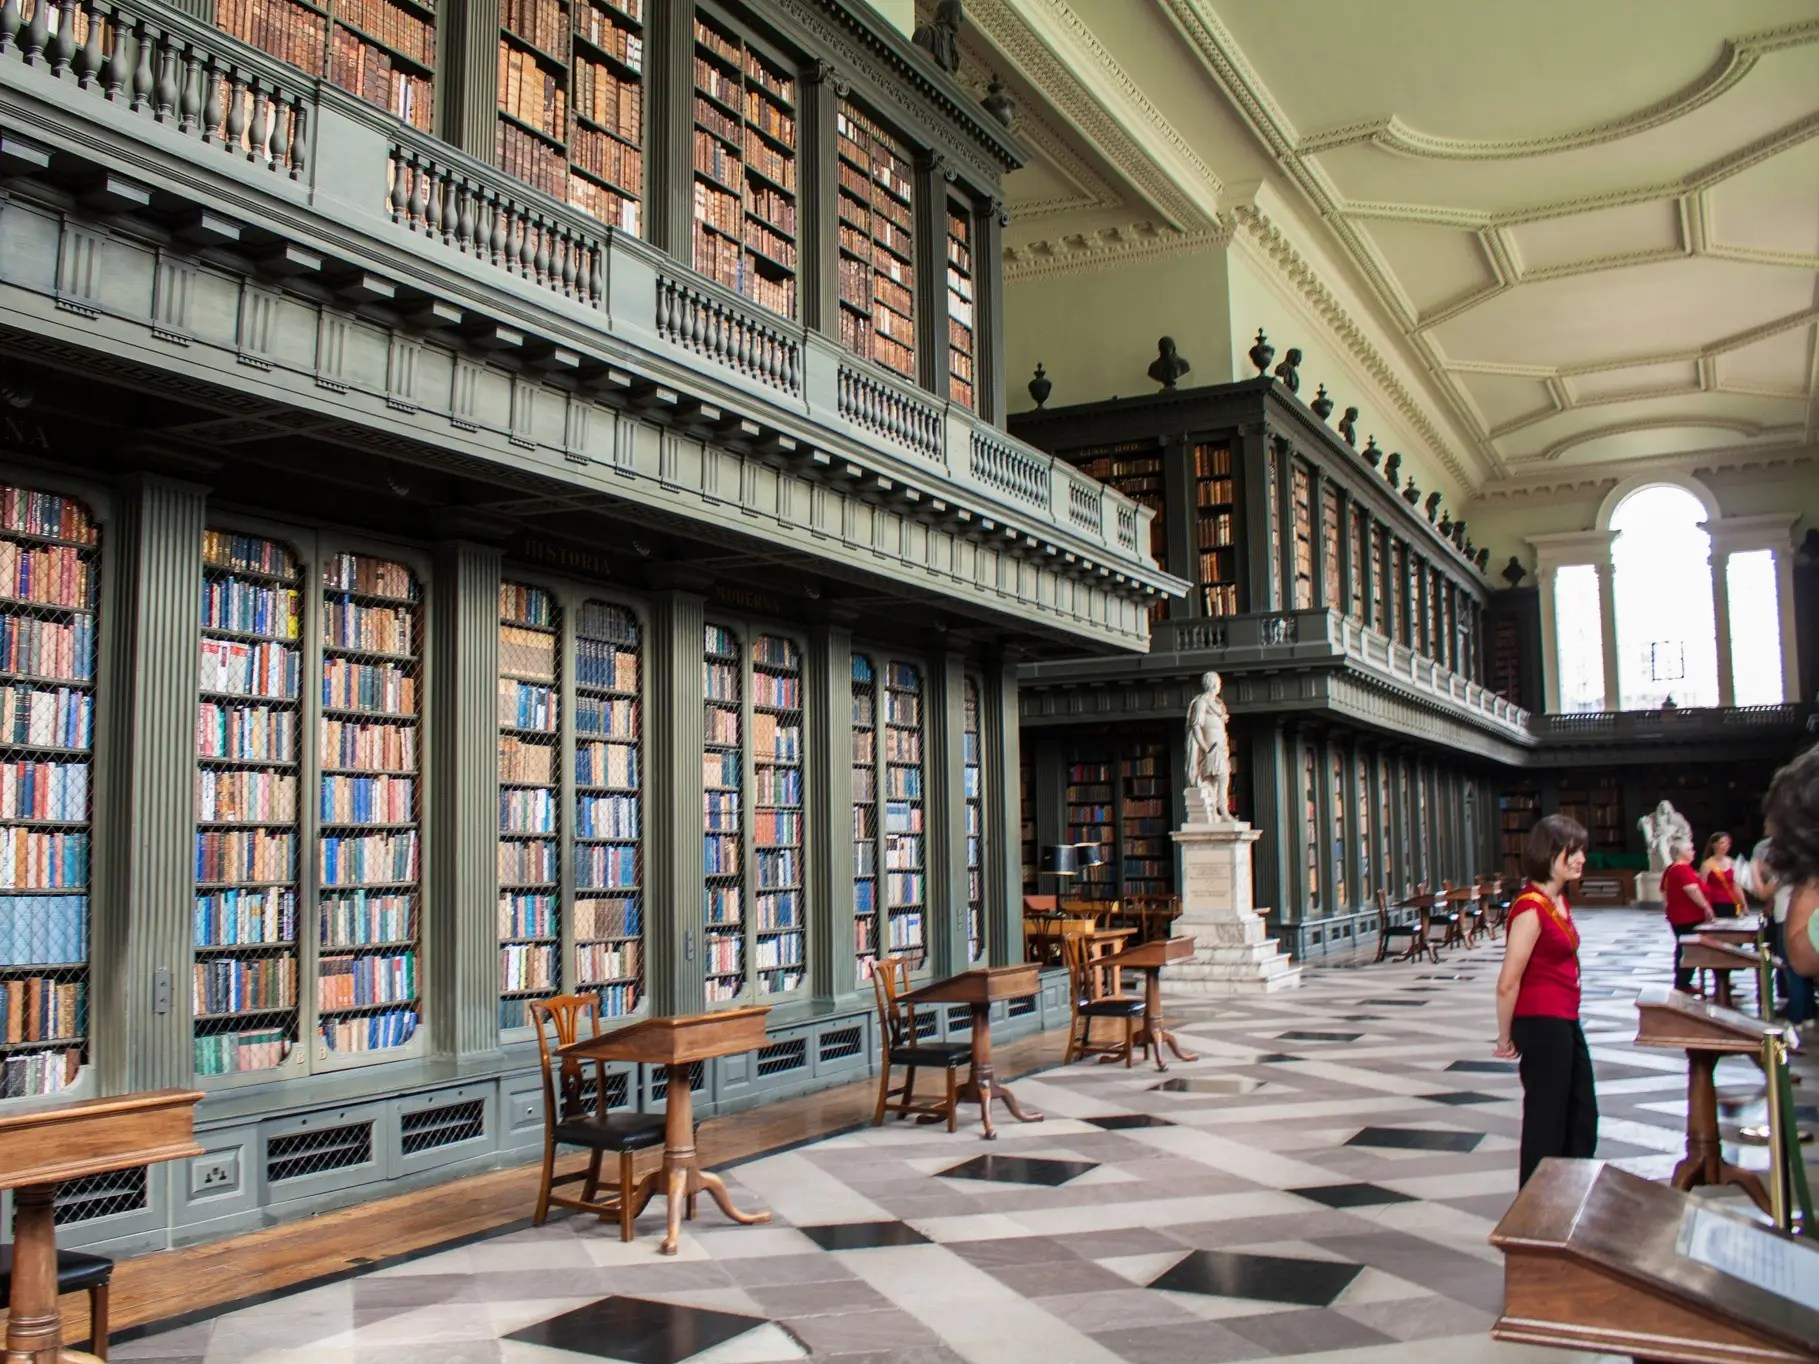 Housed in the College of All Souls of the Faithful Departed at Oxford College in England, the Codrington Library was completed in 1752 thanks to a monetary donation from British solider Christopher Codrington. Codrington also donated his personal collection of 12,000 books.